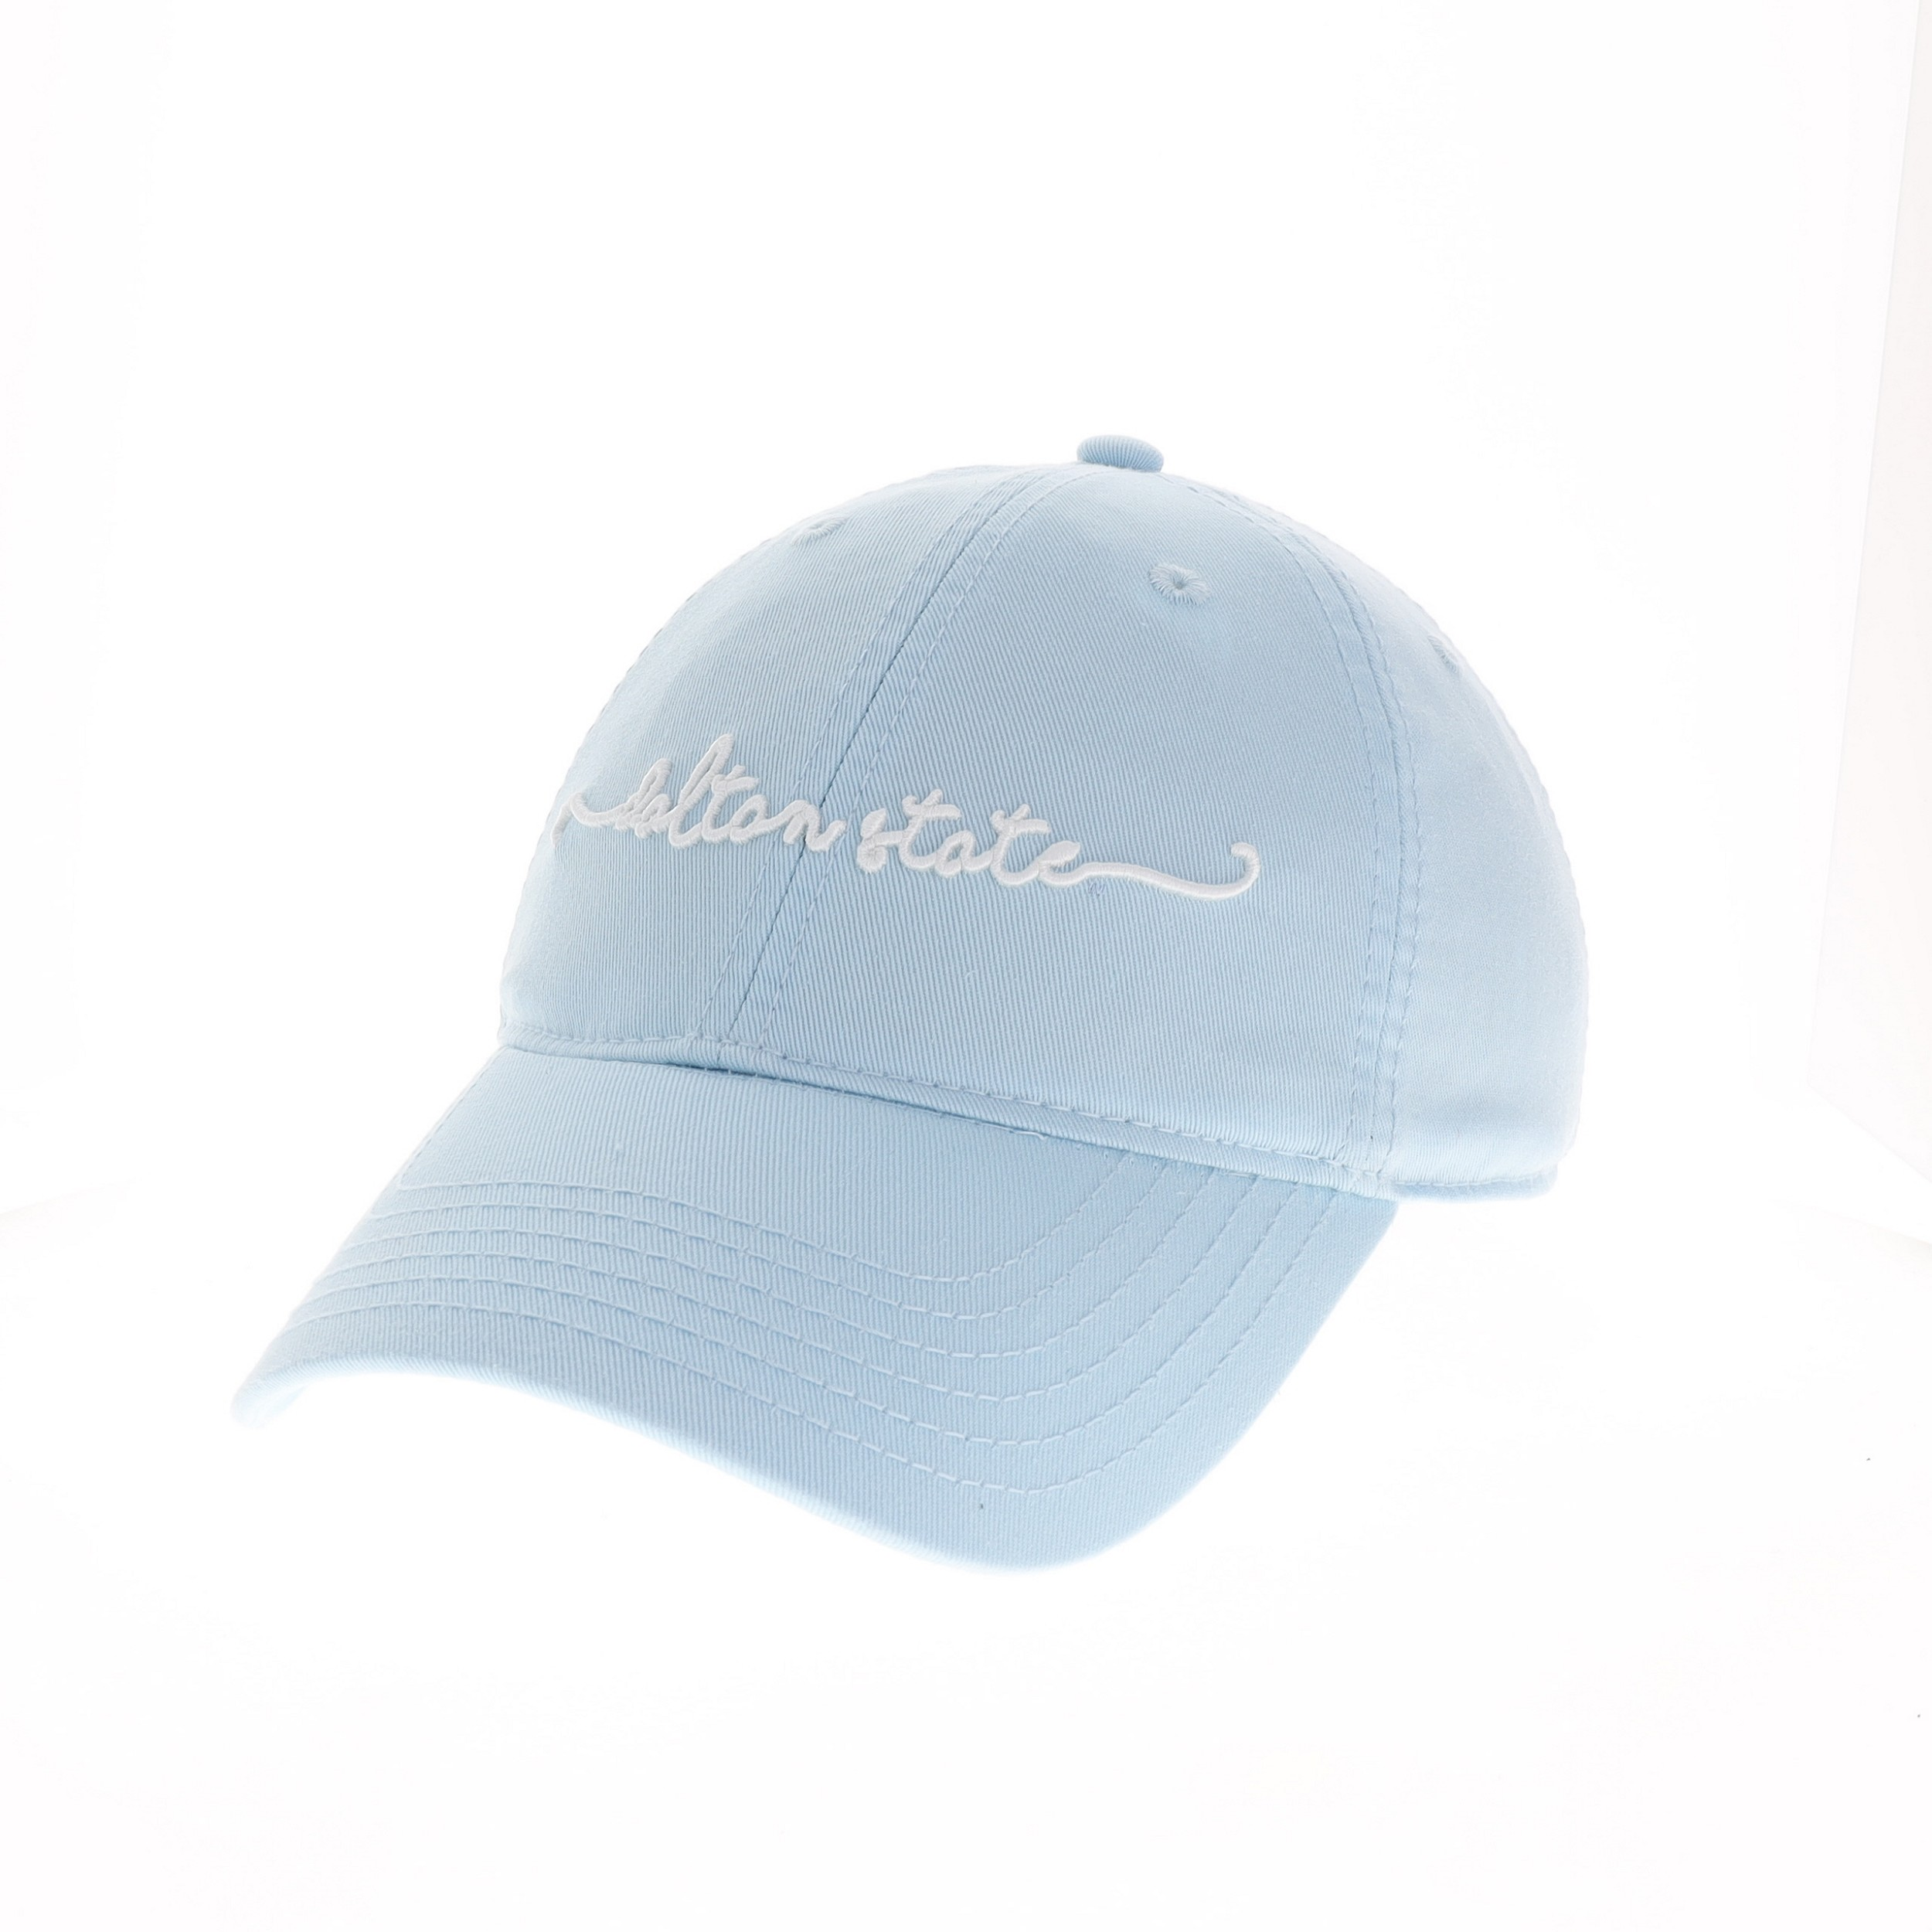 Dalton State Script Relaxed Twill Hat